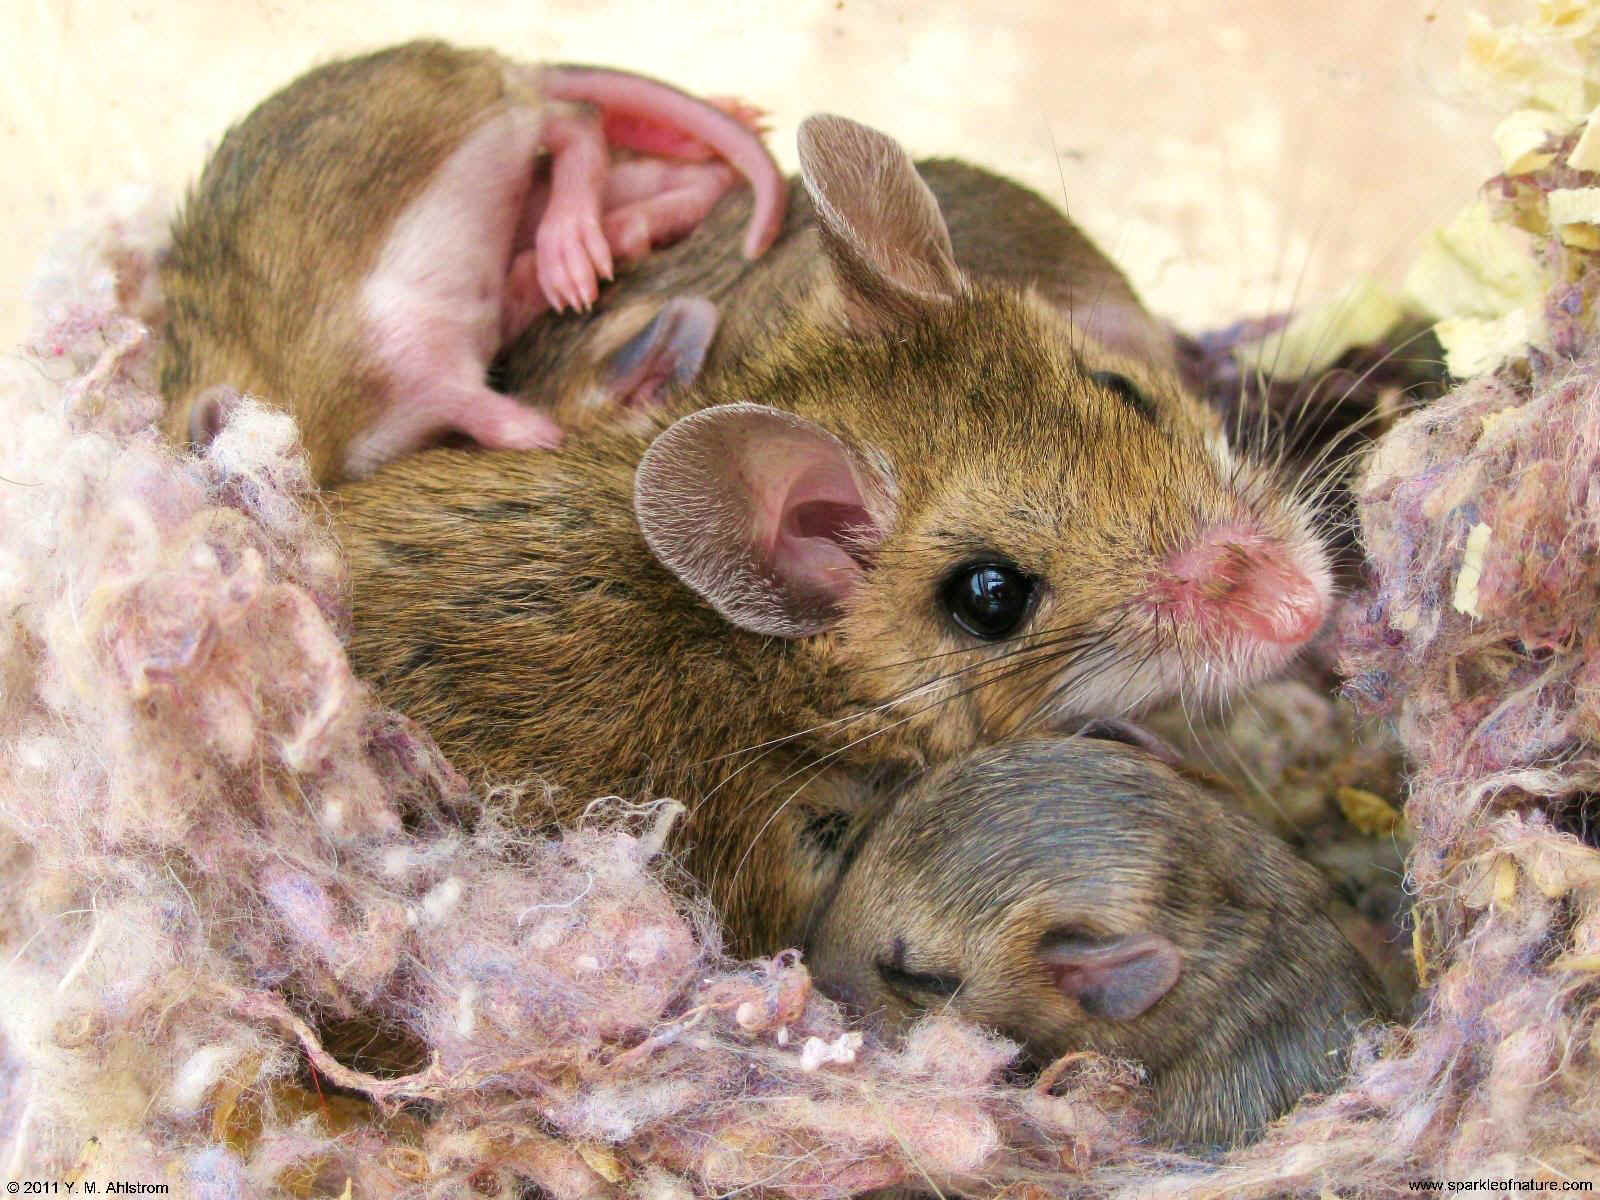 23459 mother mouse 1600x1200.jpg (371308 bytes)